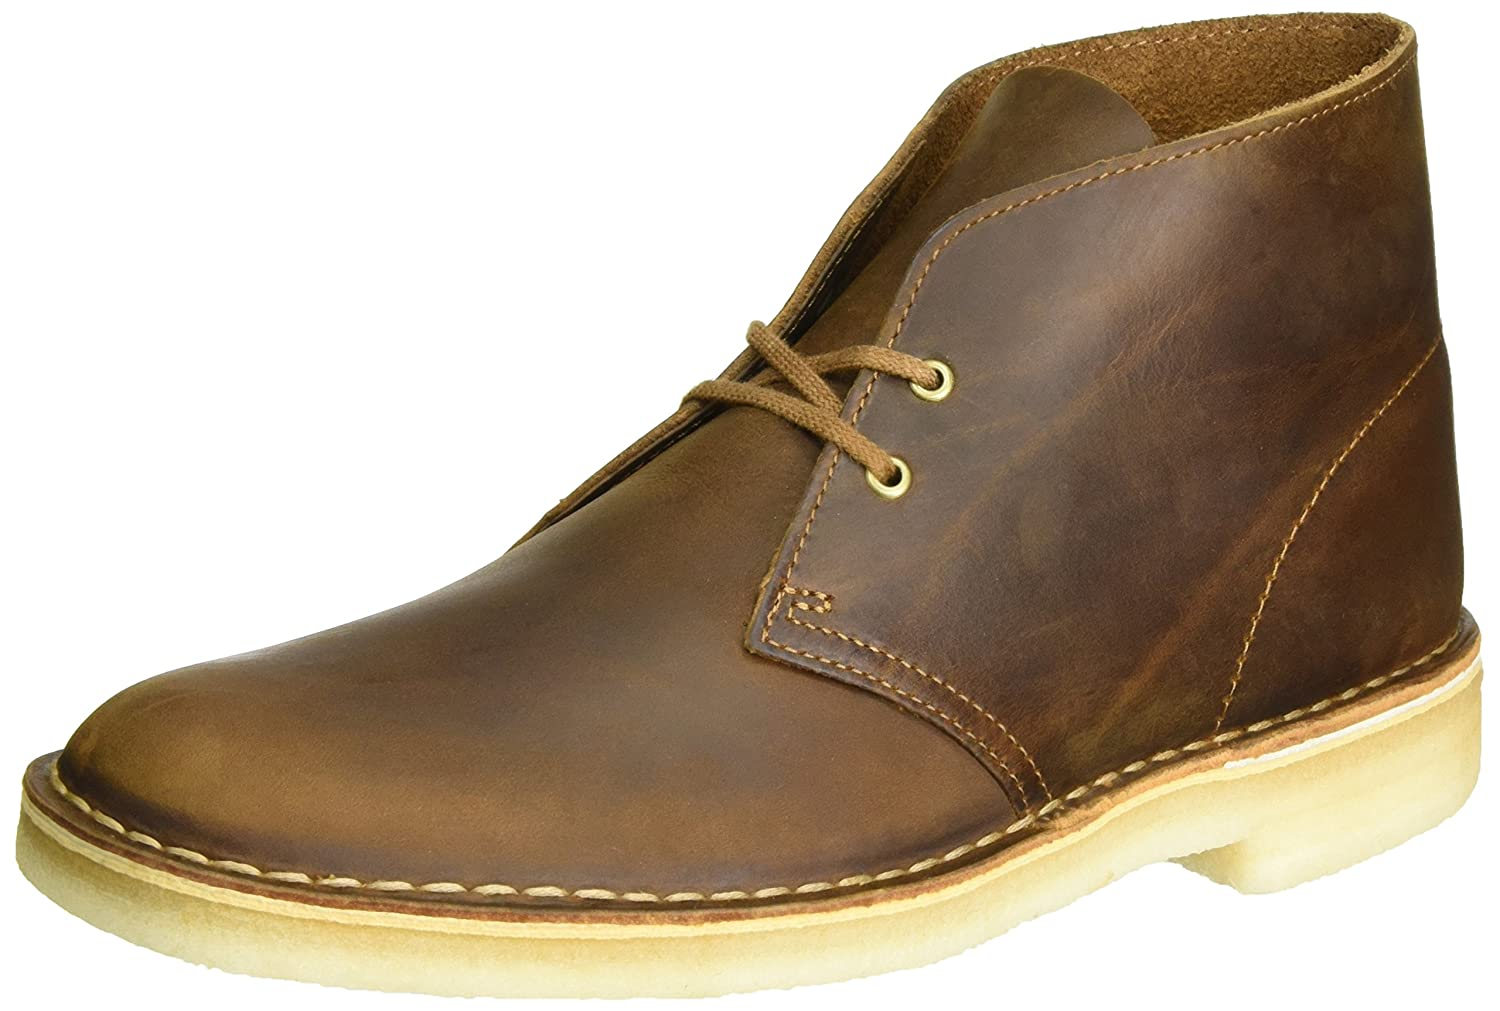 6336d8c73ec Clarks Originals Desert Boot